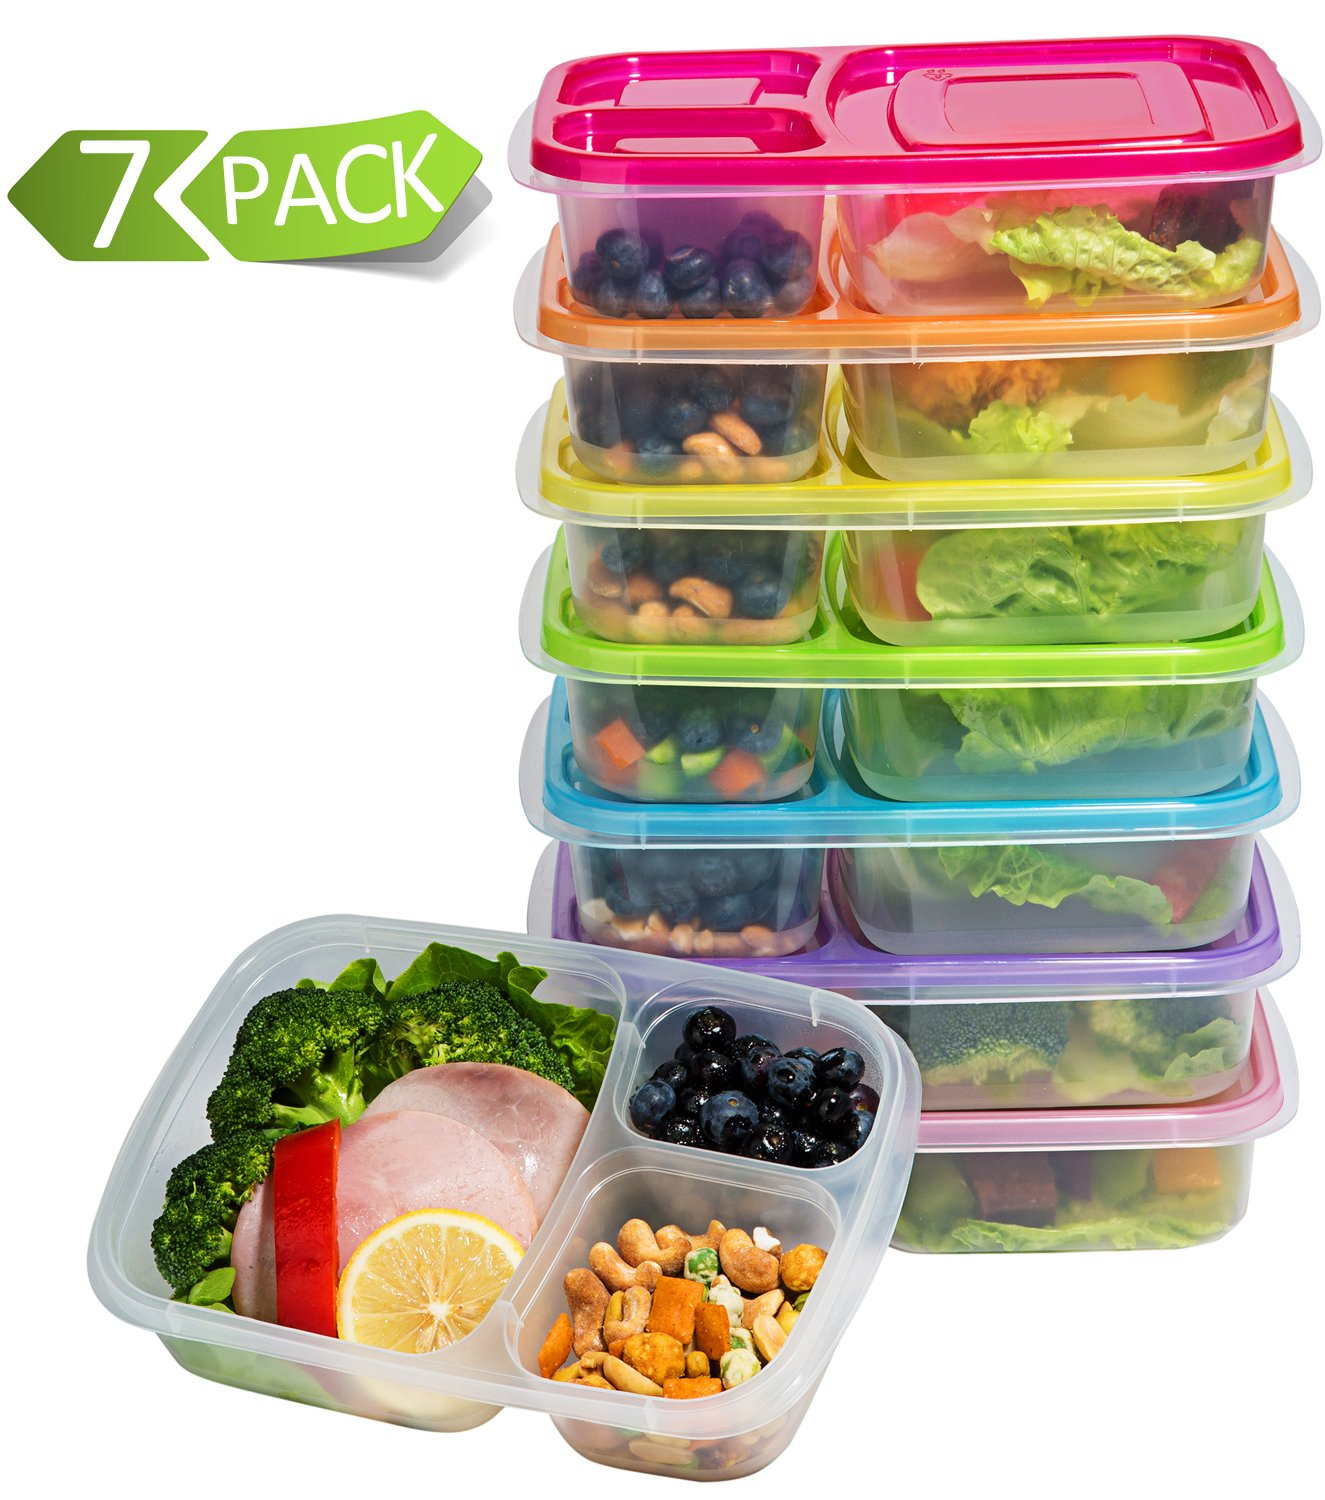 Meal Prep Containers 3-Compartment Lunch Boxes Food Storage Containers with LidsBPA Free Plastic Bento Box Set of 7Portion Control Divided CoverReusable ...  sc 1 st  Amazon.com : sectional lunch boxes - Sectionals, Sofas & Couches